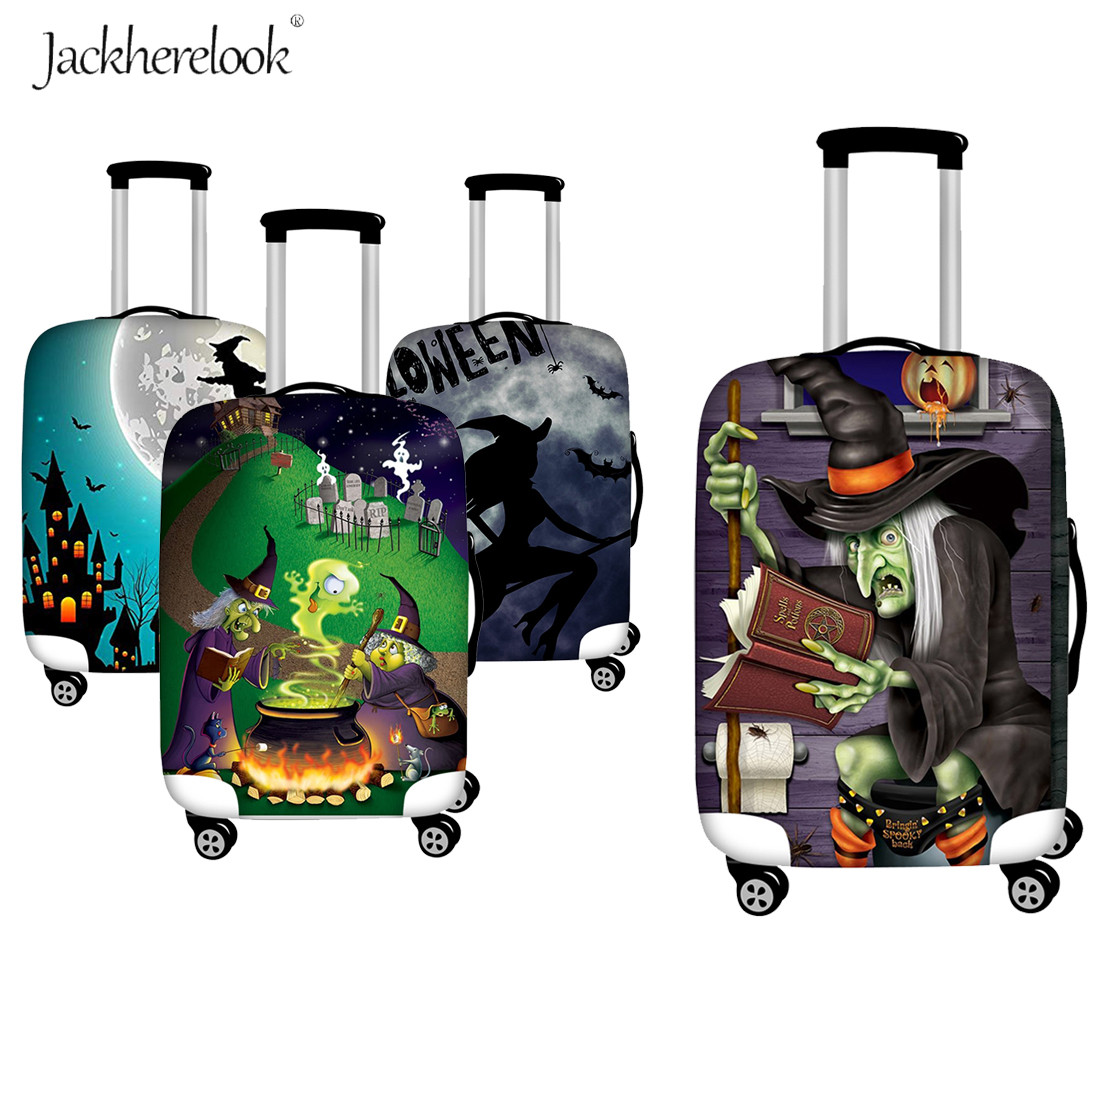 Jackherelook Halloween Witch Travel Suitcase Dustproof Cover Elastic Luggage Bag Case Thicken Travel On Road Protective Cover